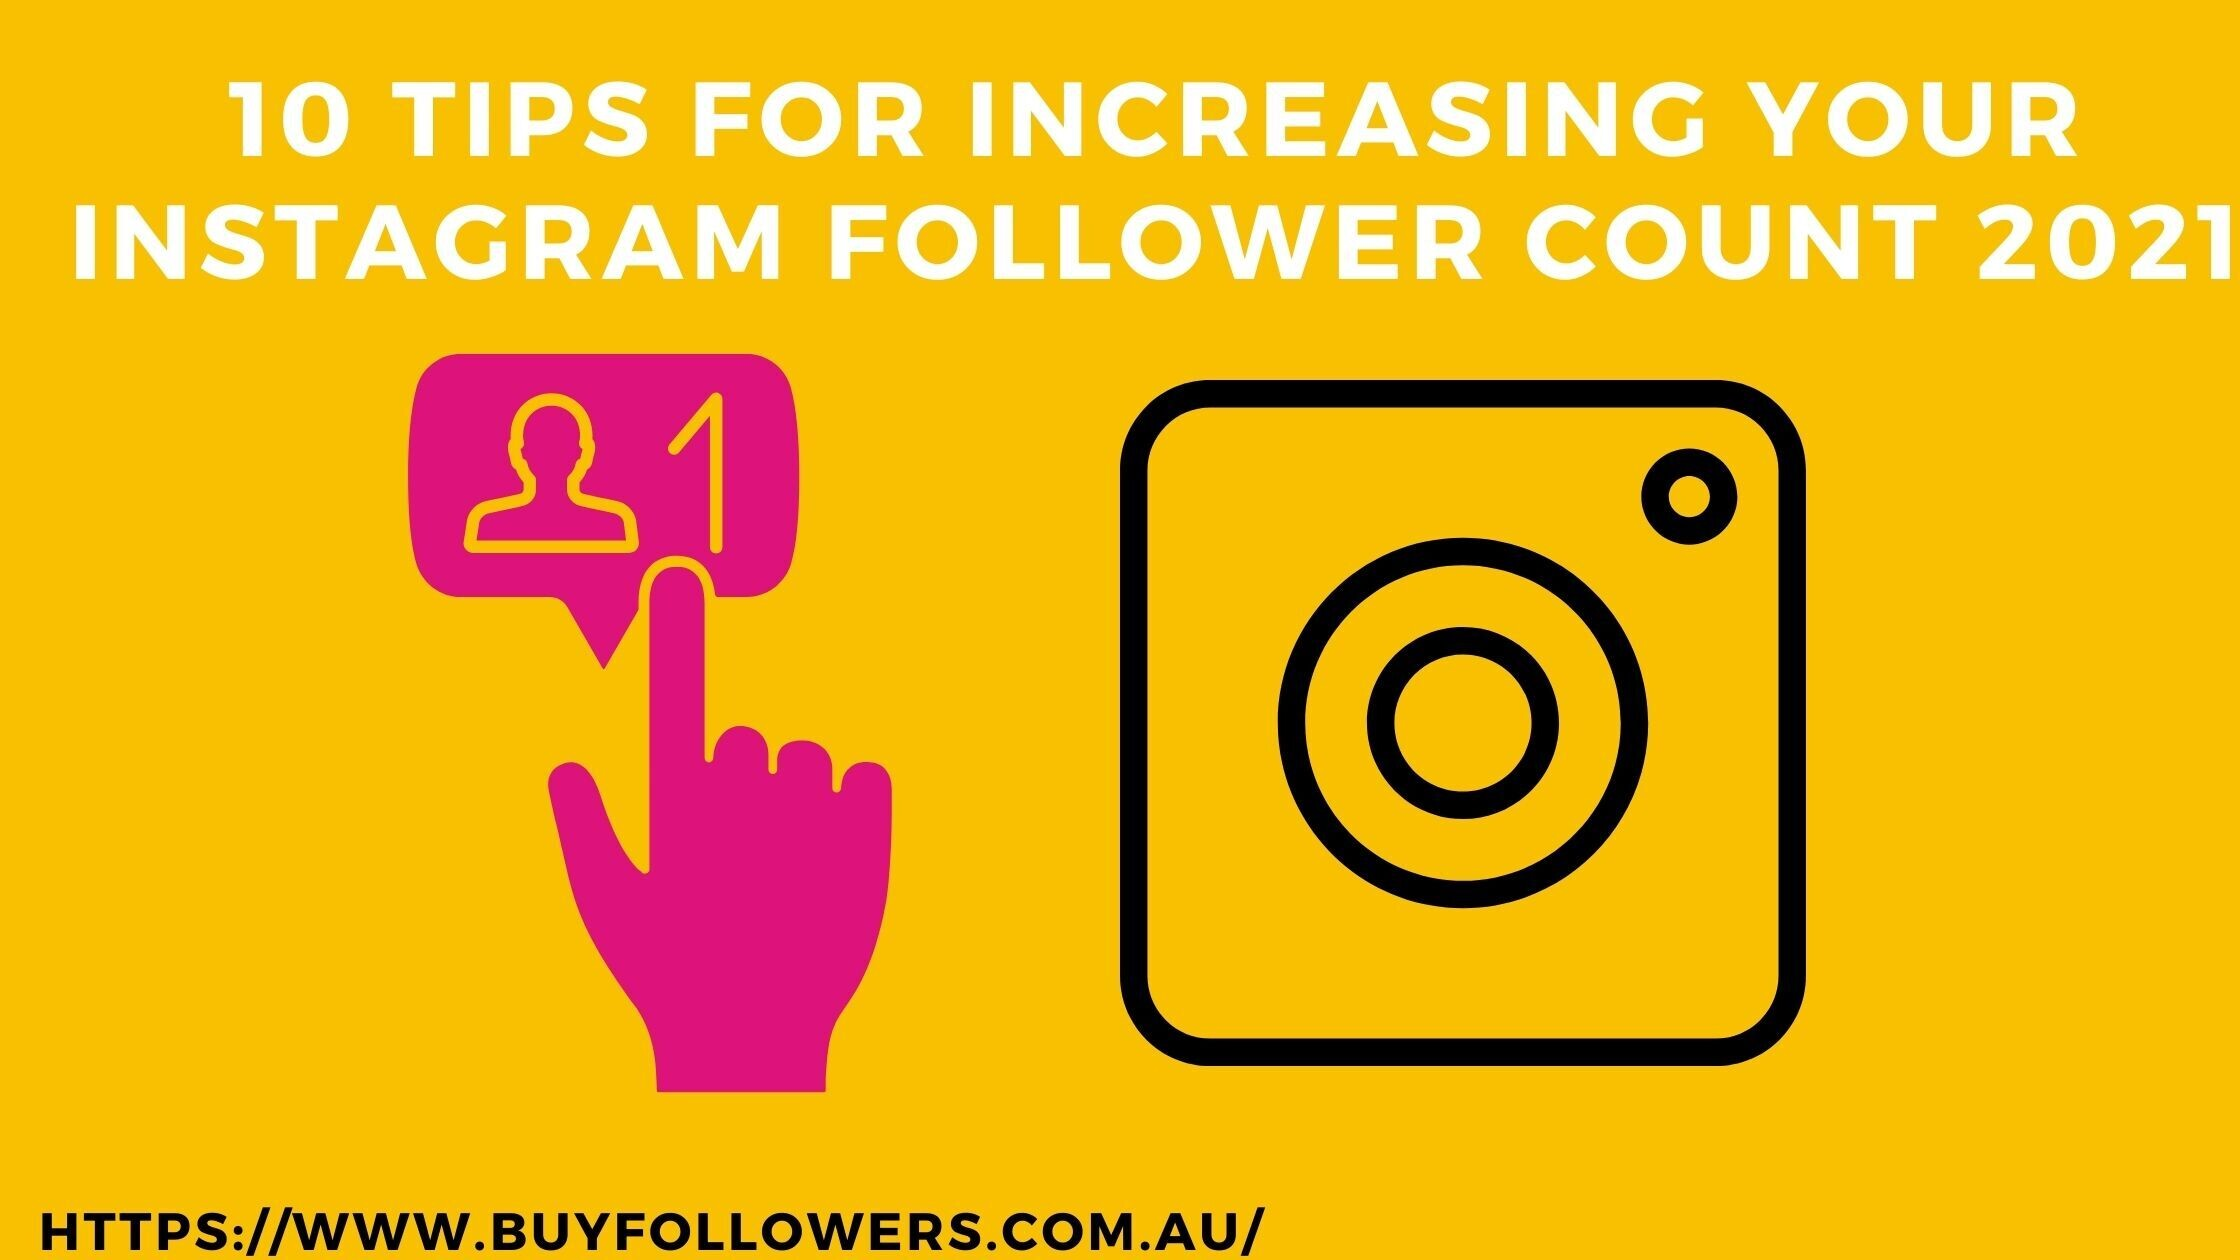 10 Tips for Increasing Your Instagram Follower Count 2021